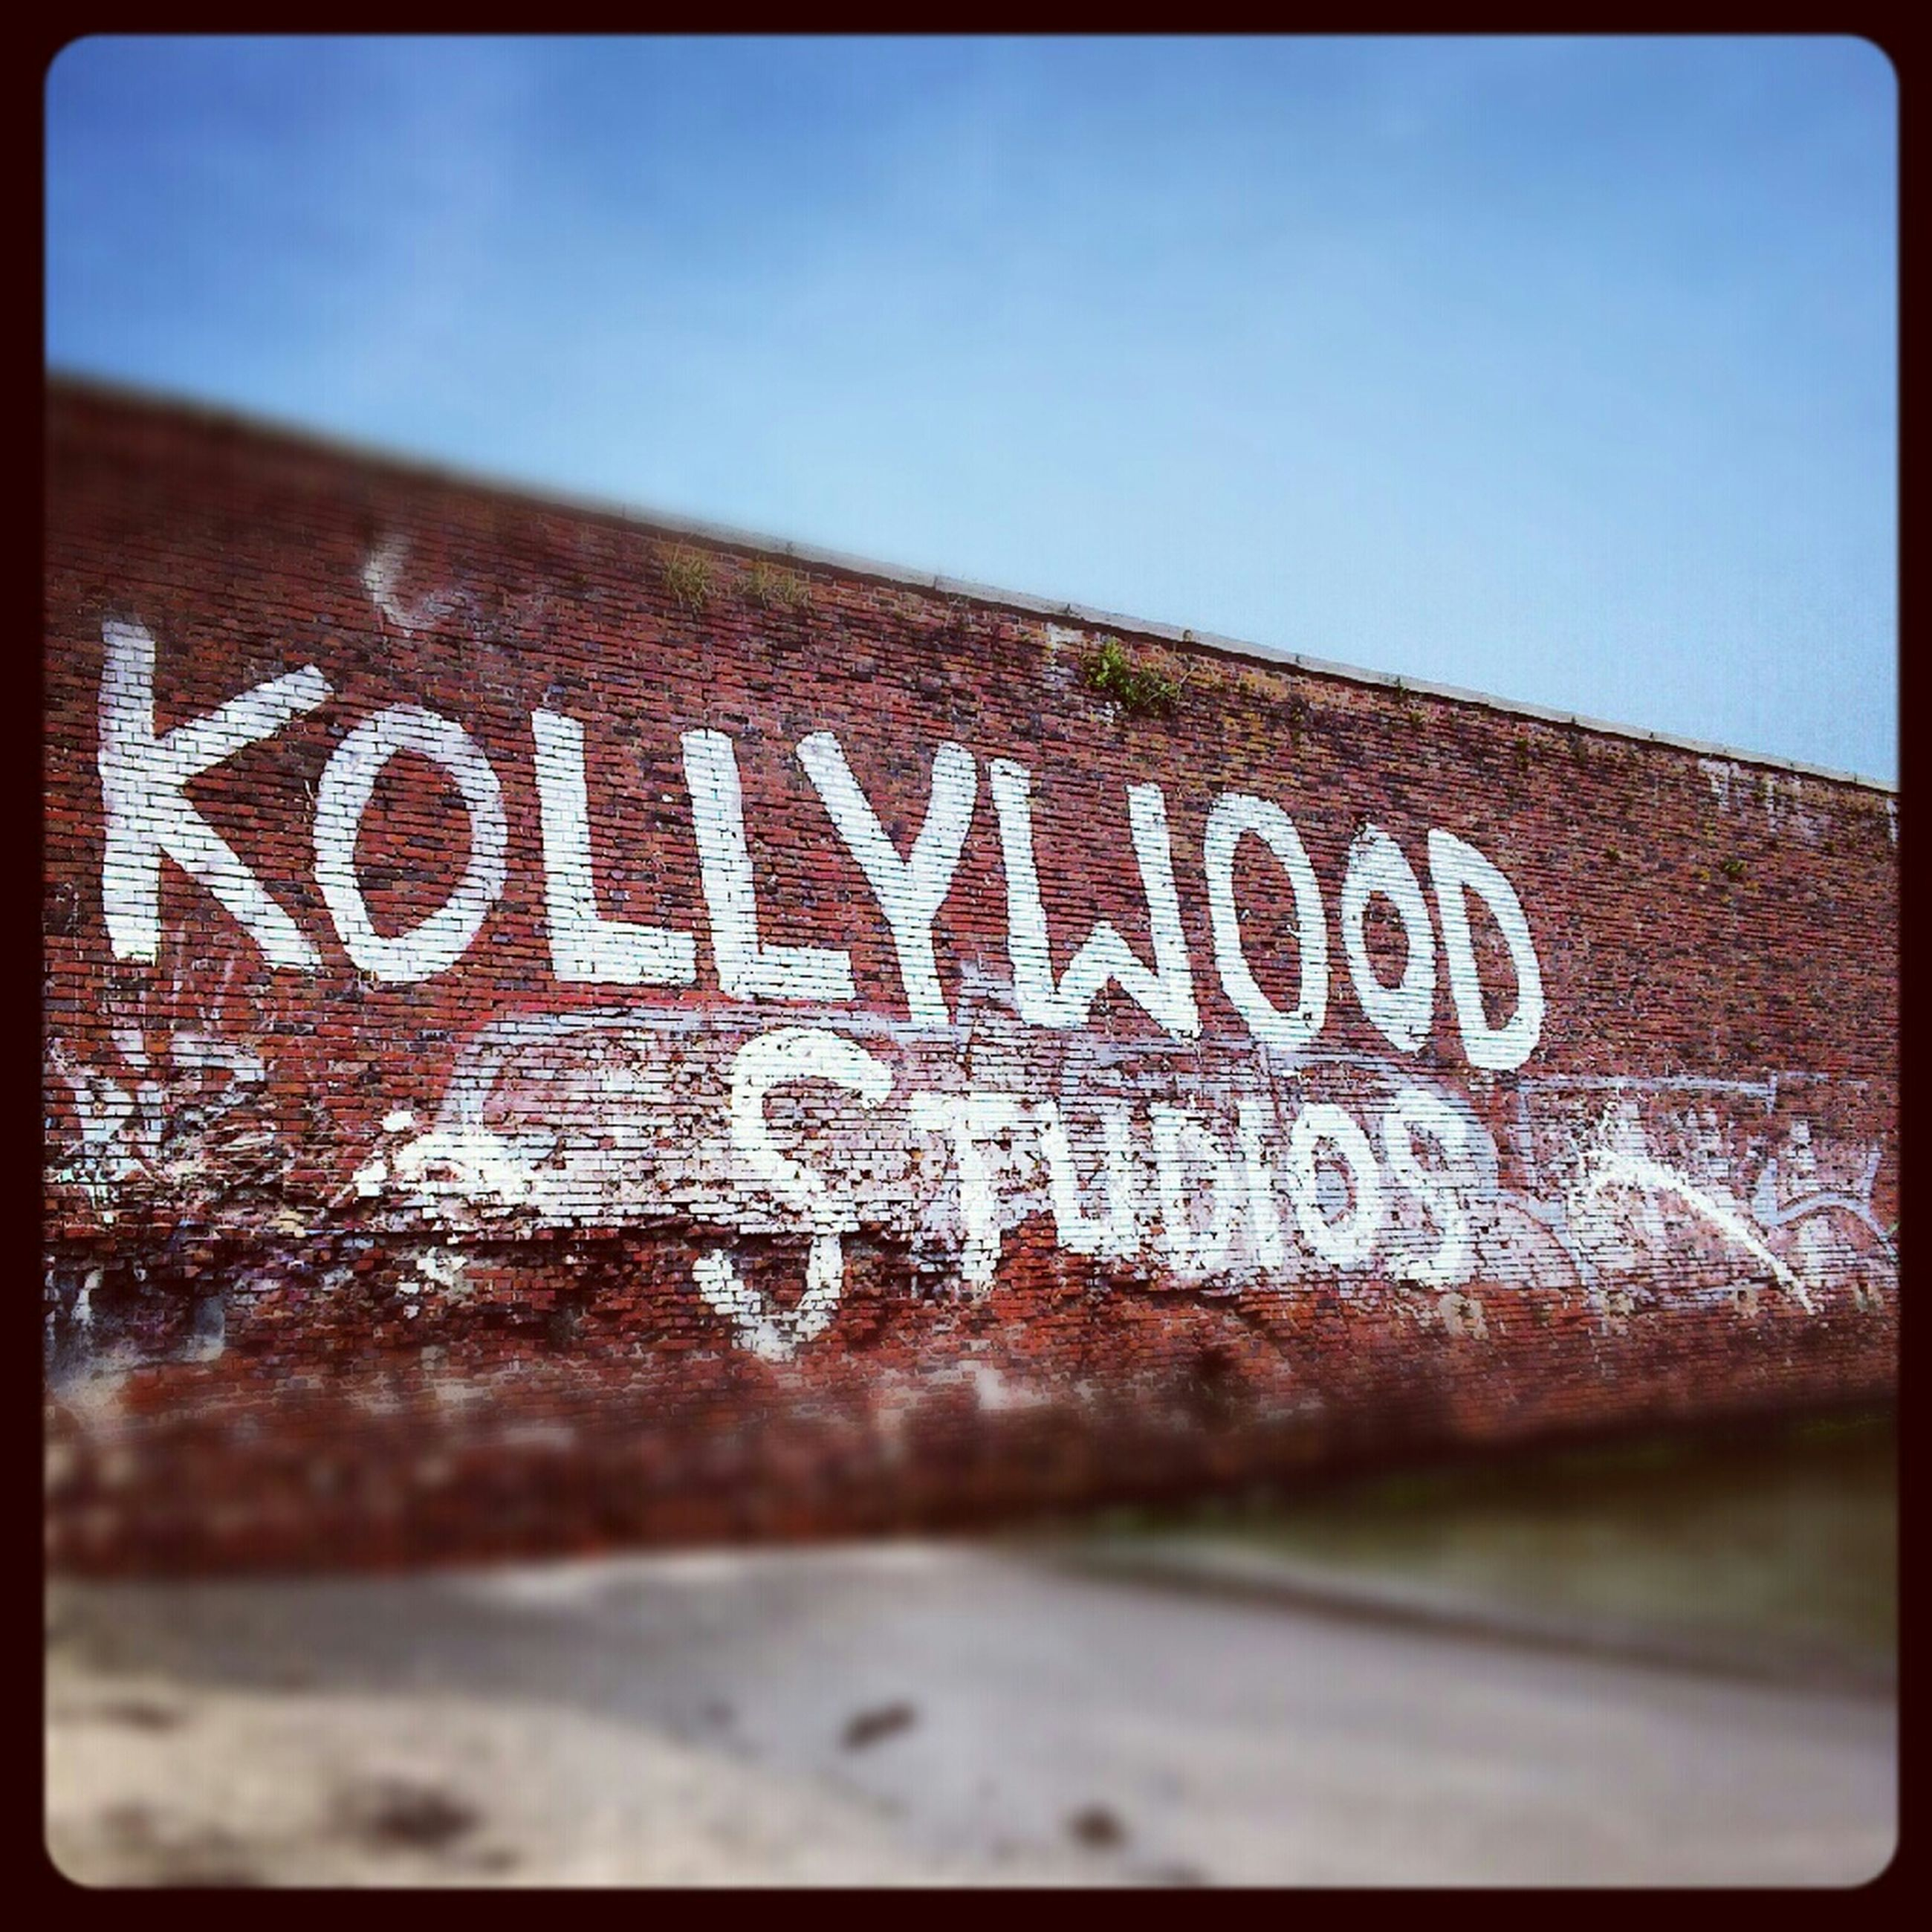 text, western script, transfer print, communication, auto post production filter, capital letter, close-up, clear sky, non-western script, built structure, graffiti, wall - building feature, damaged, architecture, wall, information, old, weathered, day, no people